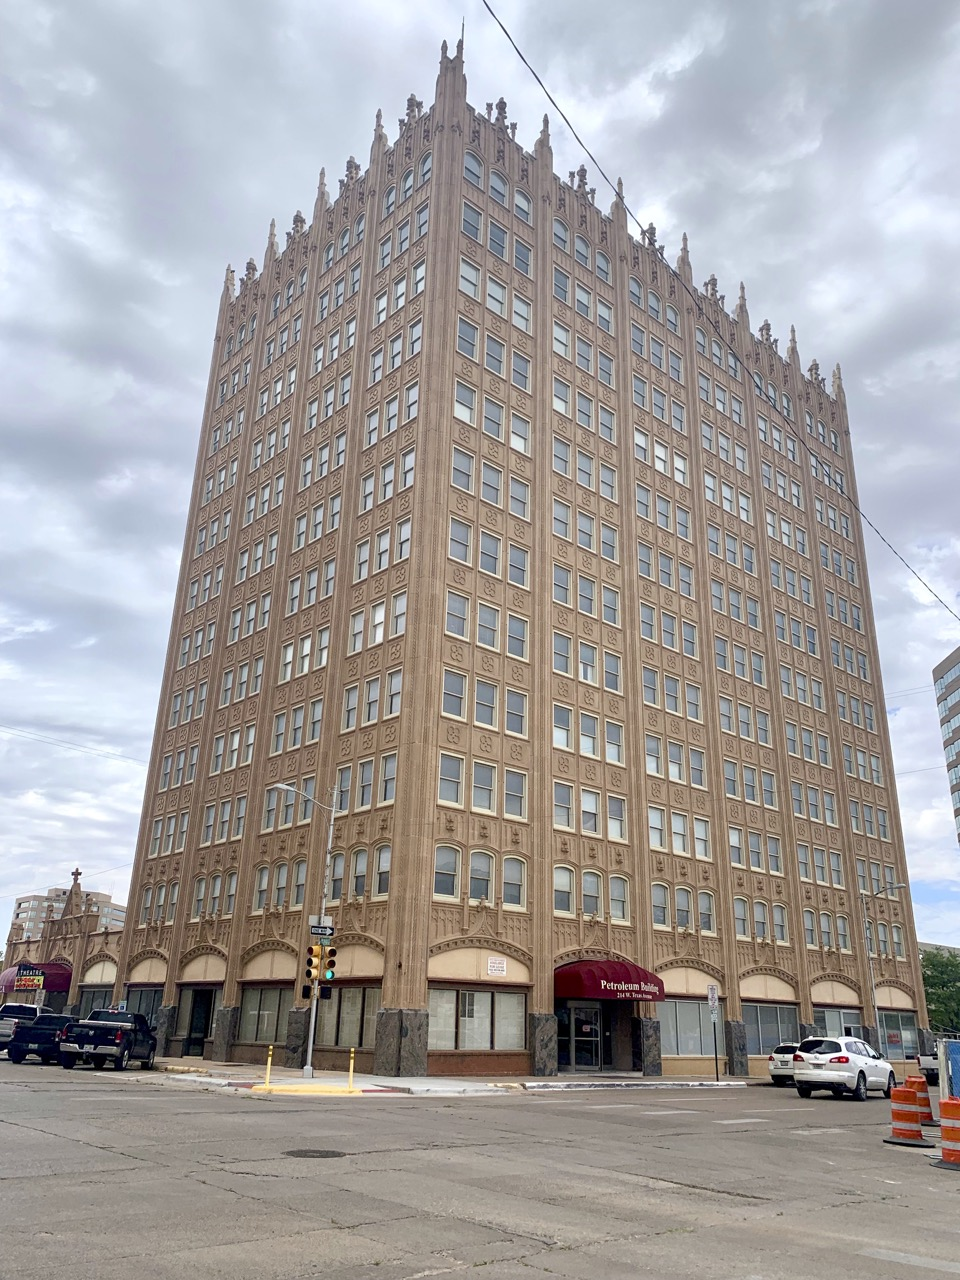 The famous Petroleum Building in downtown Midland.